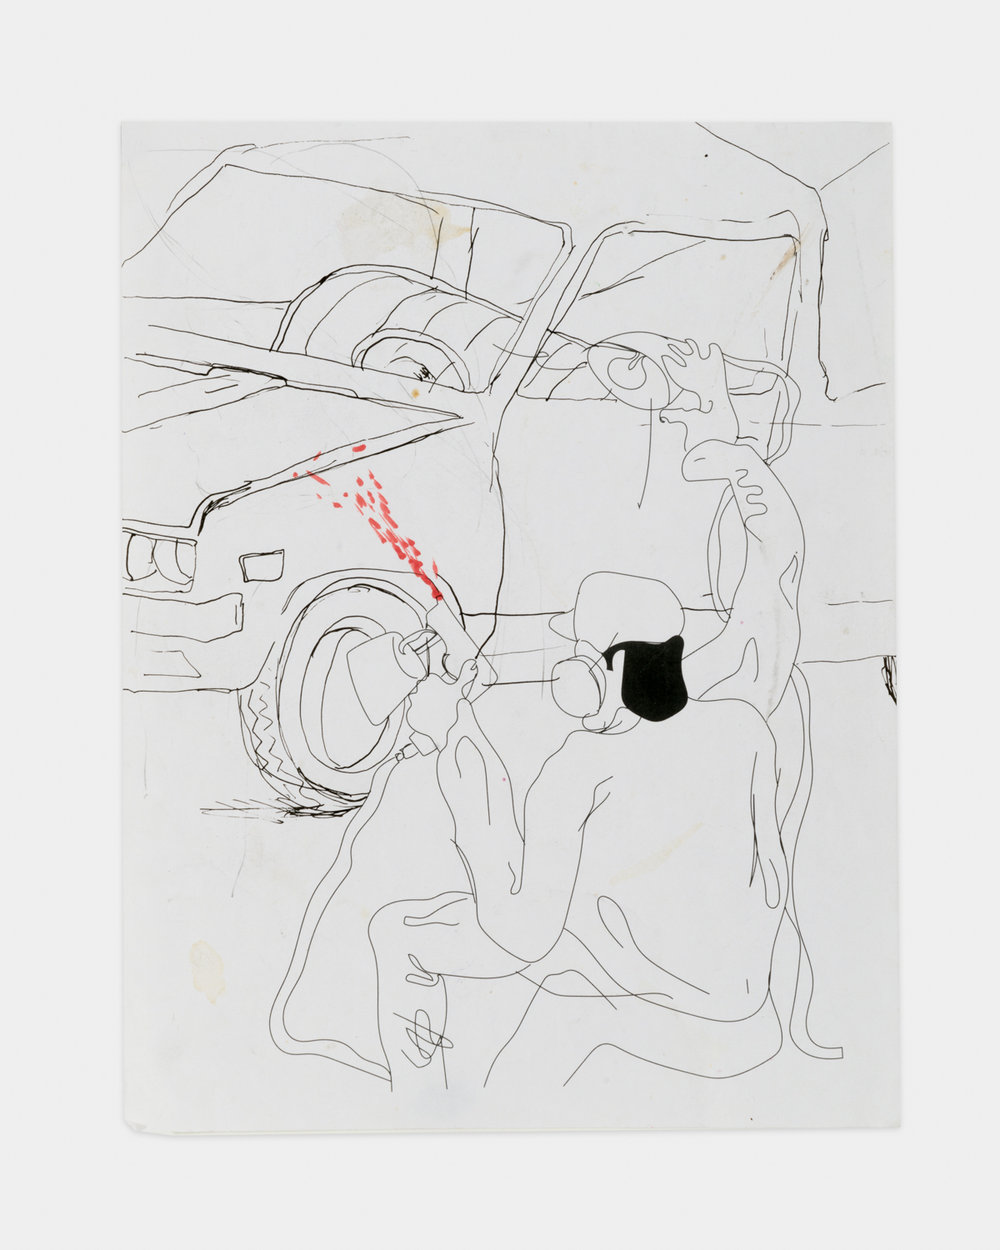 Alex Becerra The Sprayer (P.11) 2016 Ballpoint pen and ink on paper (laminated) 11 x 8 1/2 in (27.94h x 21.59w cm) AB437